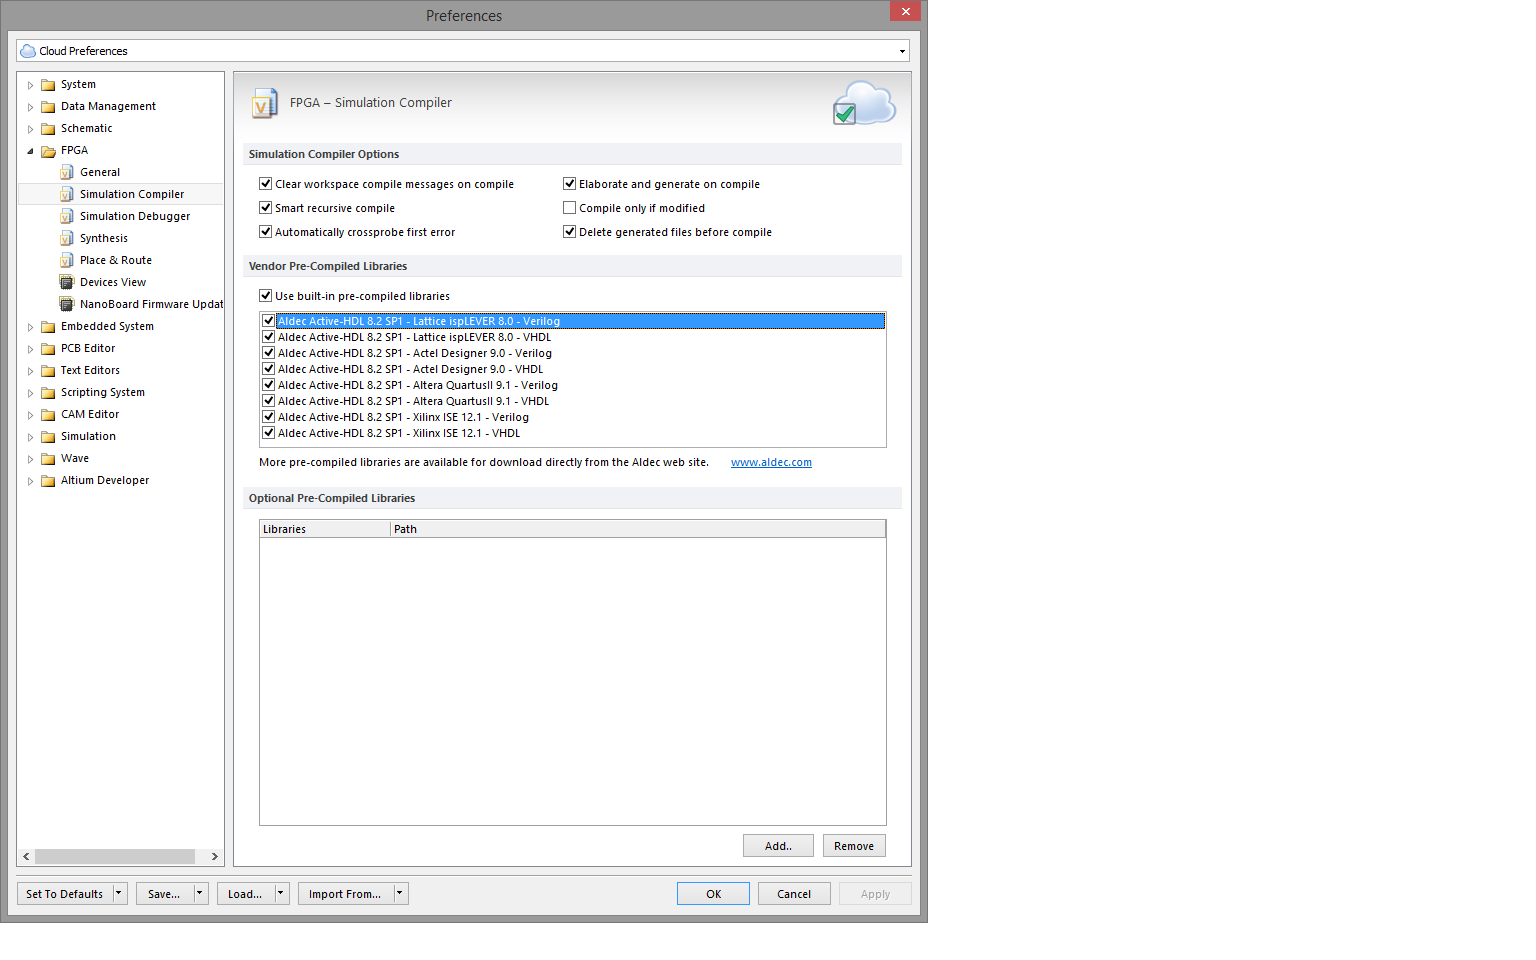 Management contract software version 1.0.0